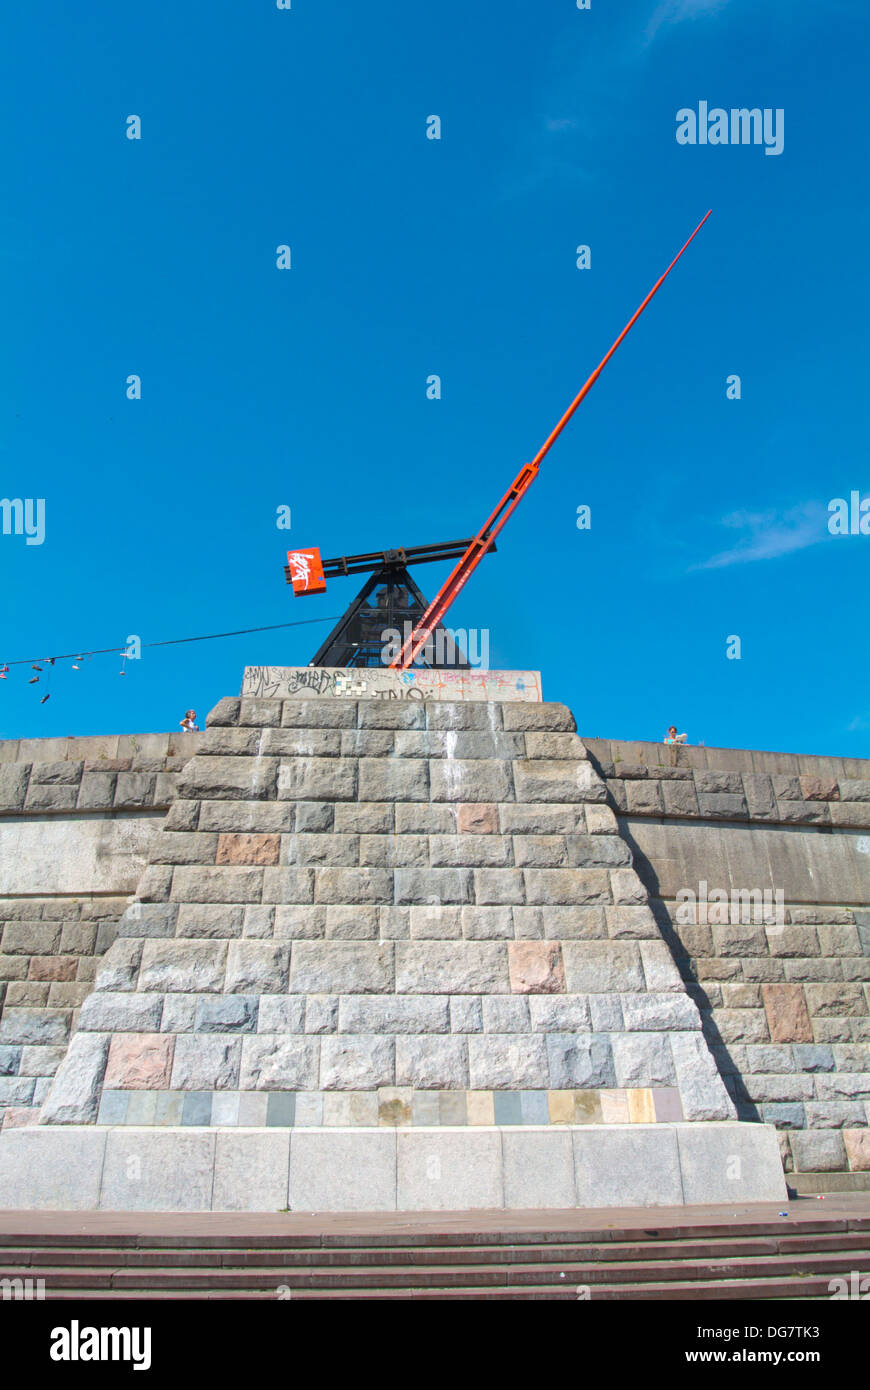 Metronome (1991) Letenske sady park Bubenec district Prague Czech Republic Europe - Stock Image